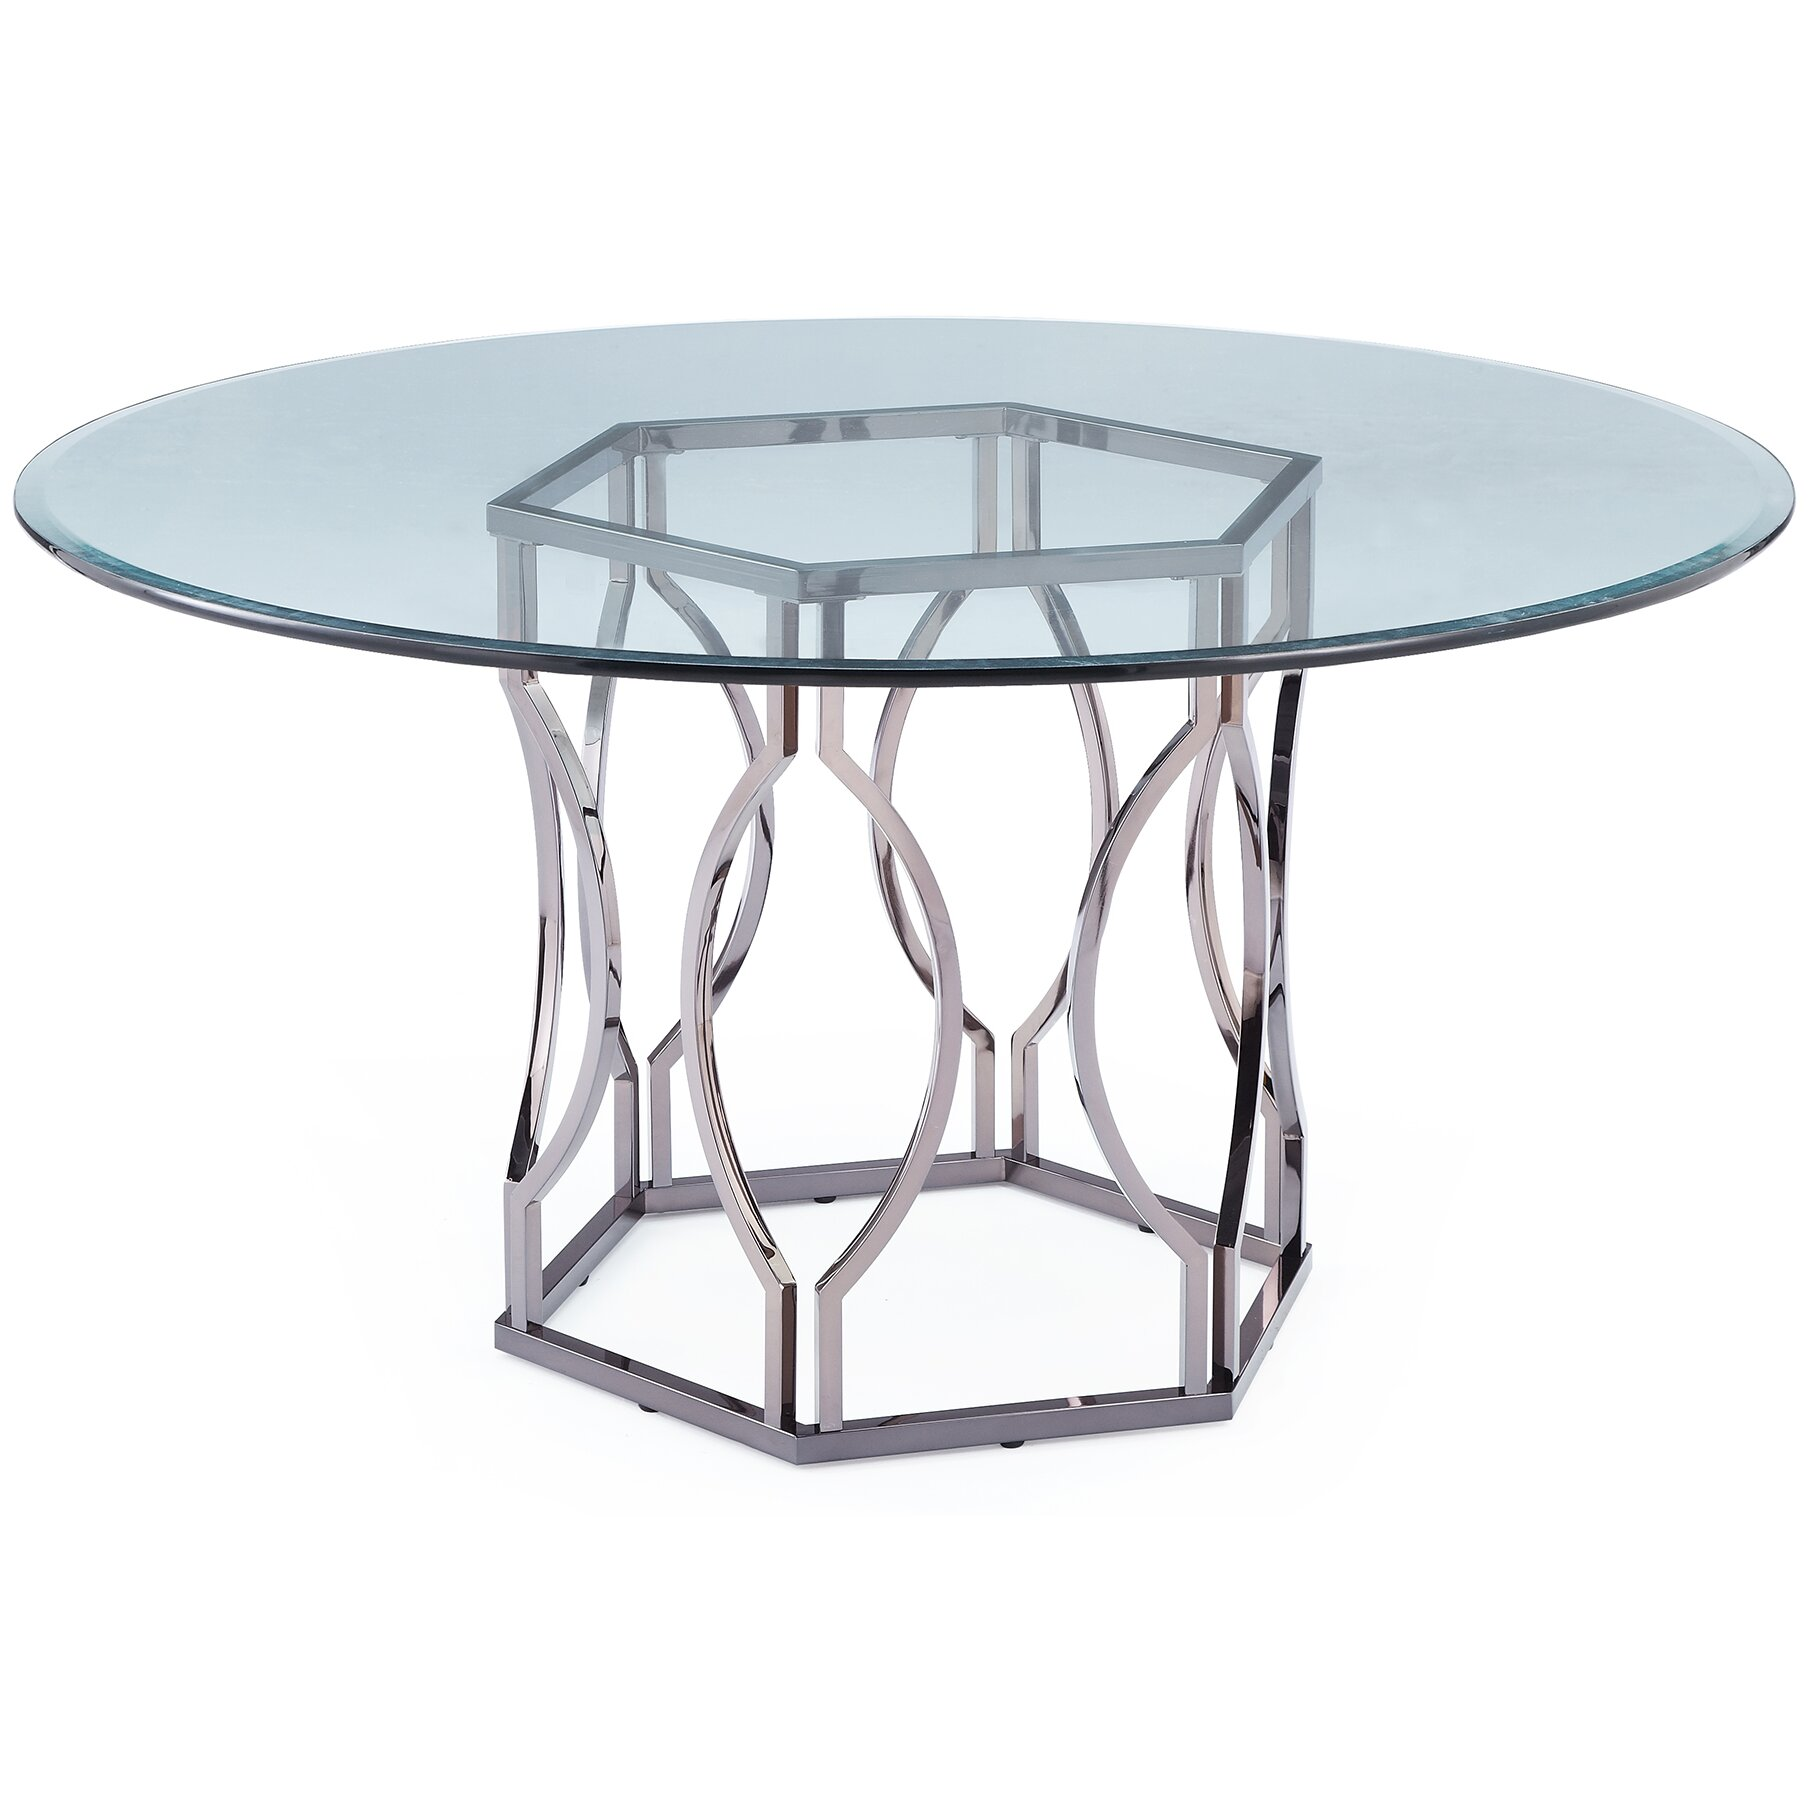 Glass Dining Table Round Mercer41 Viggo Round Glass Dining Table Reviews Wayfair